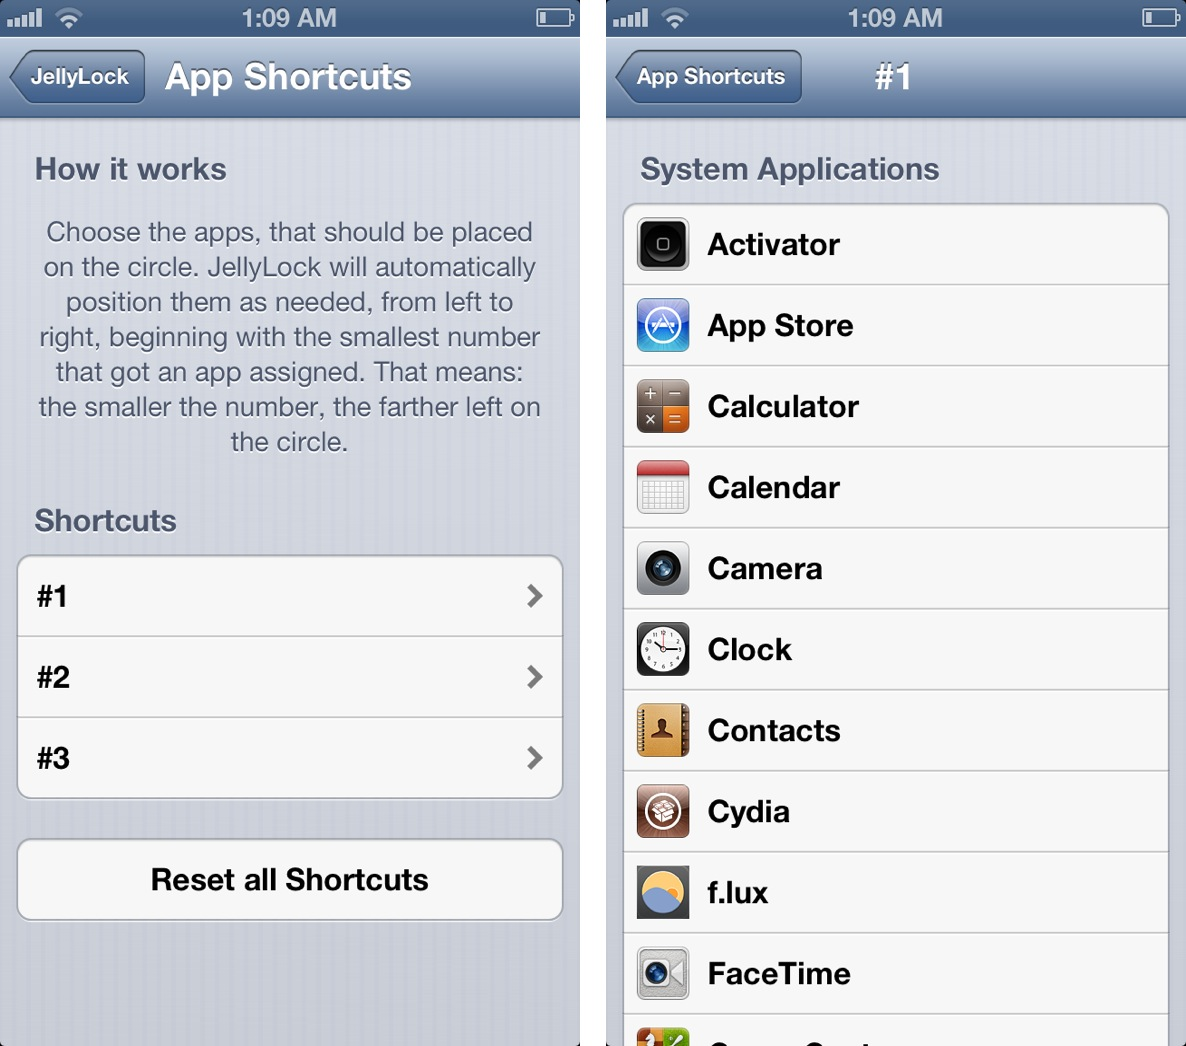 JellyLock App Shortcuts